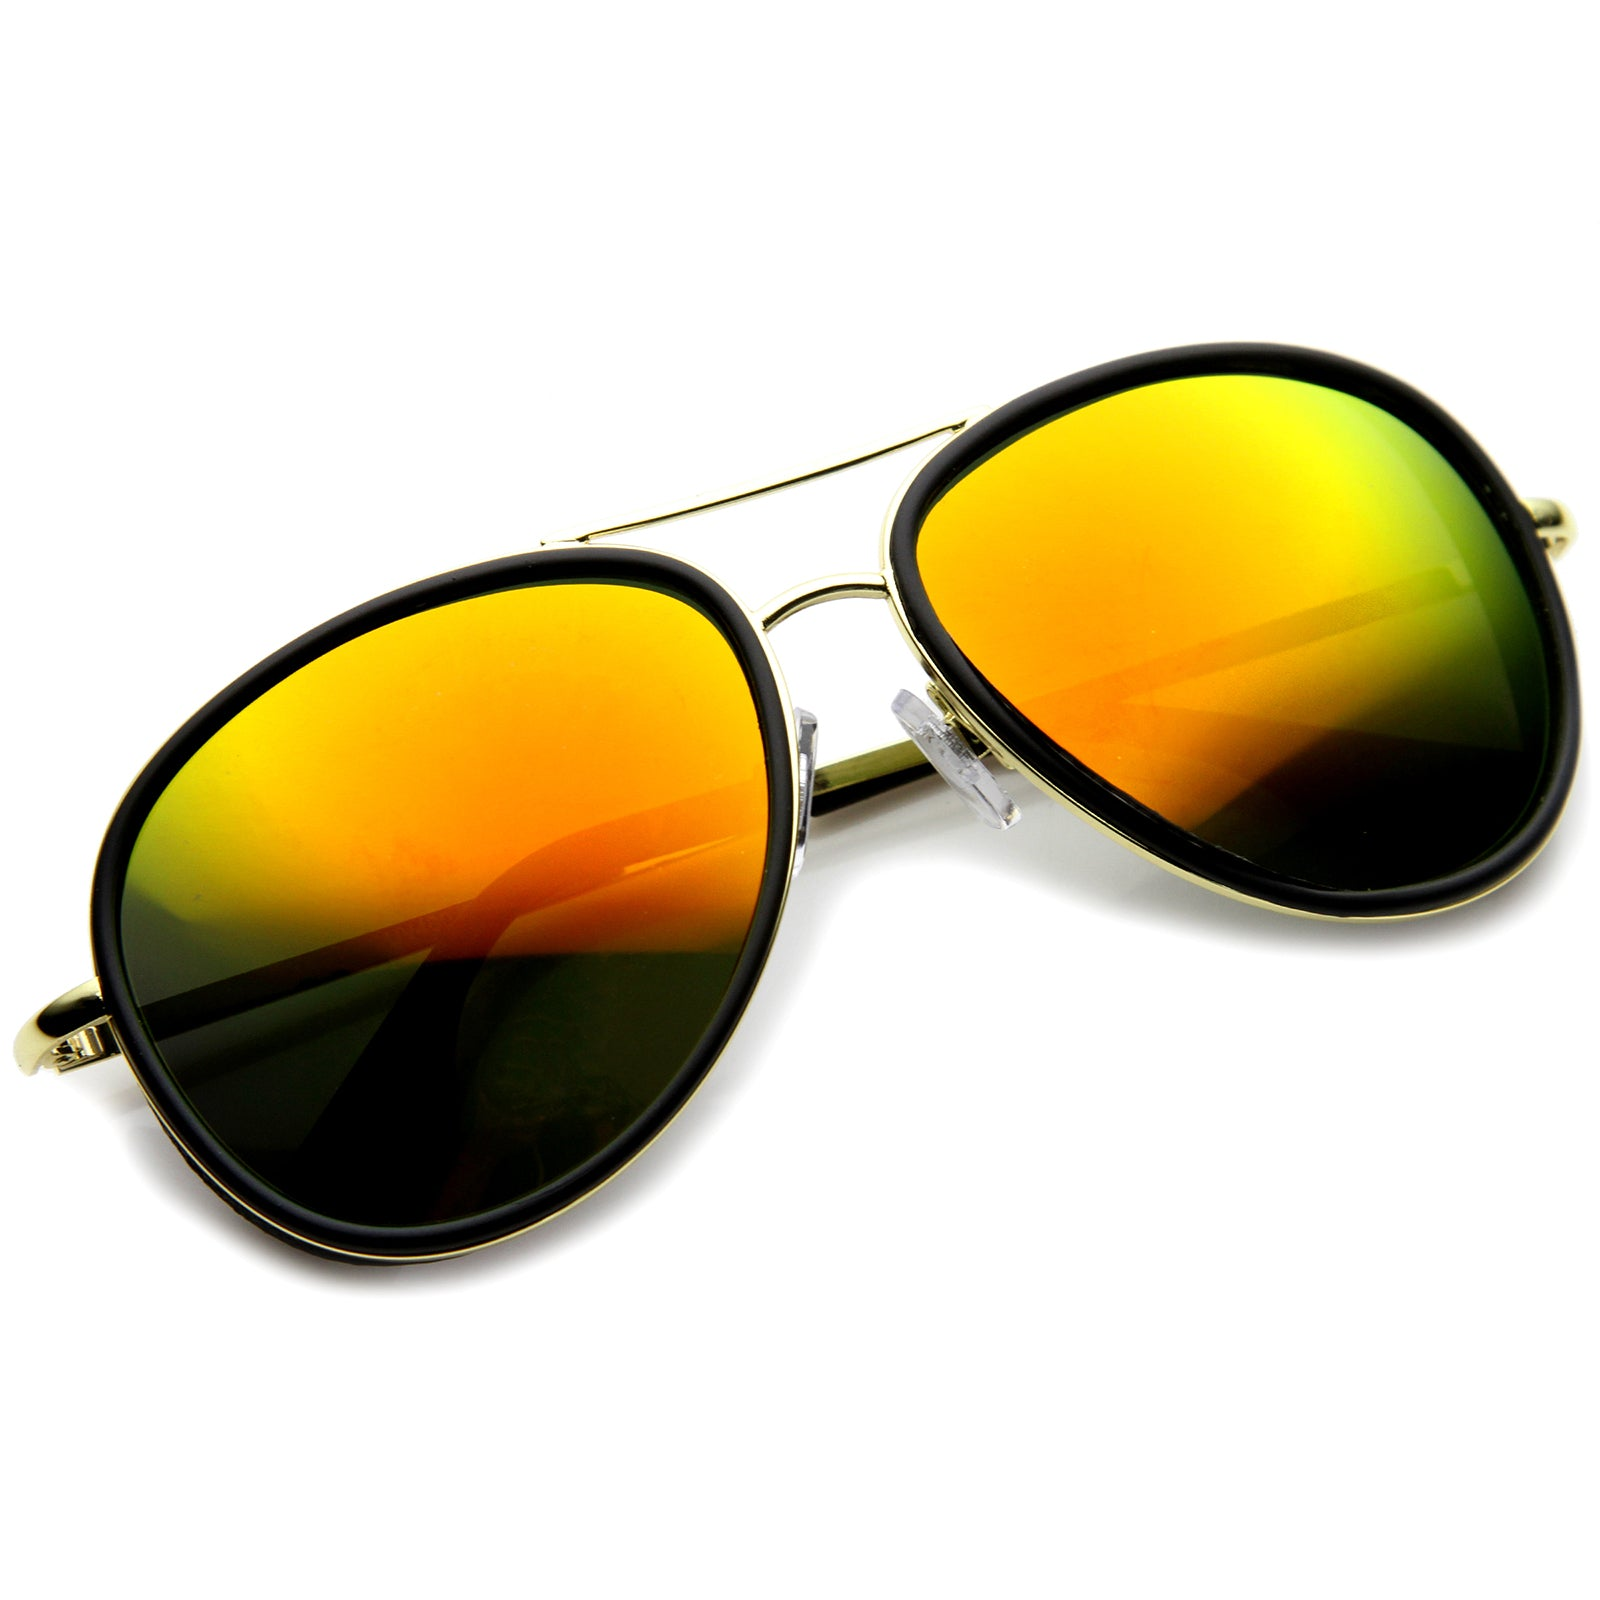 Mens Aviator Sunglasses With UV400 Protected Mirrored Lens - sunglass.la - 4